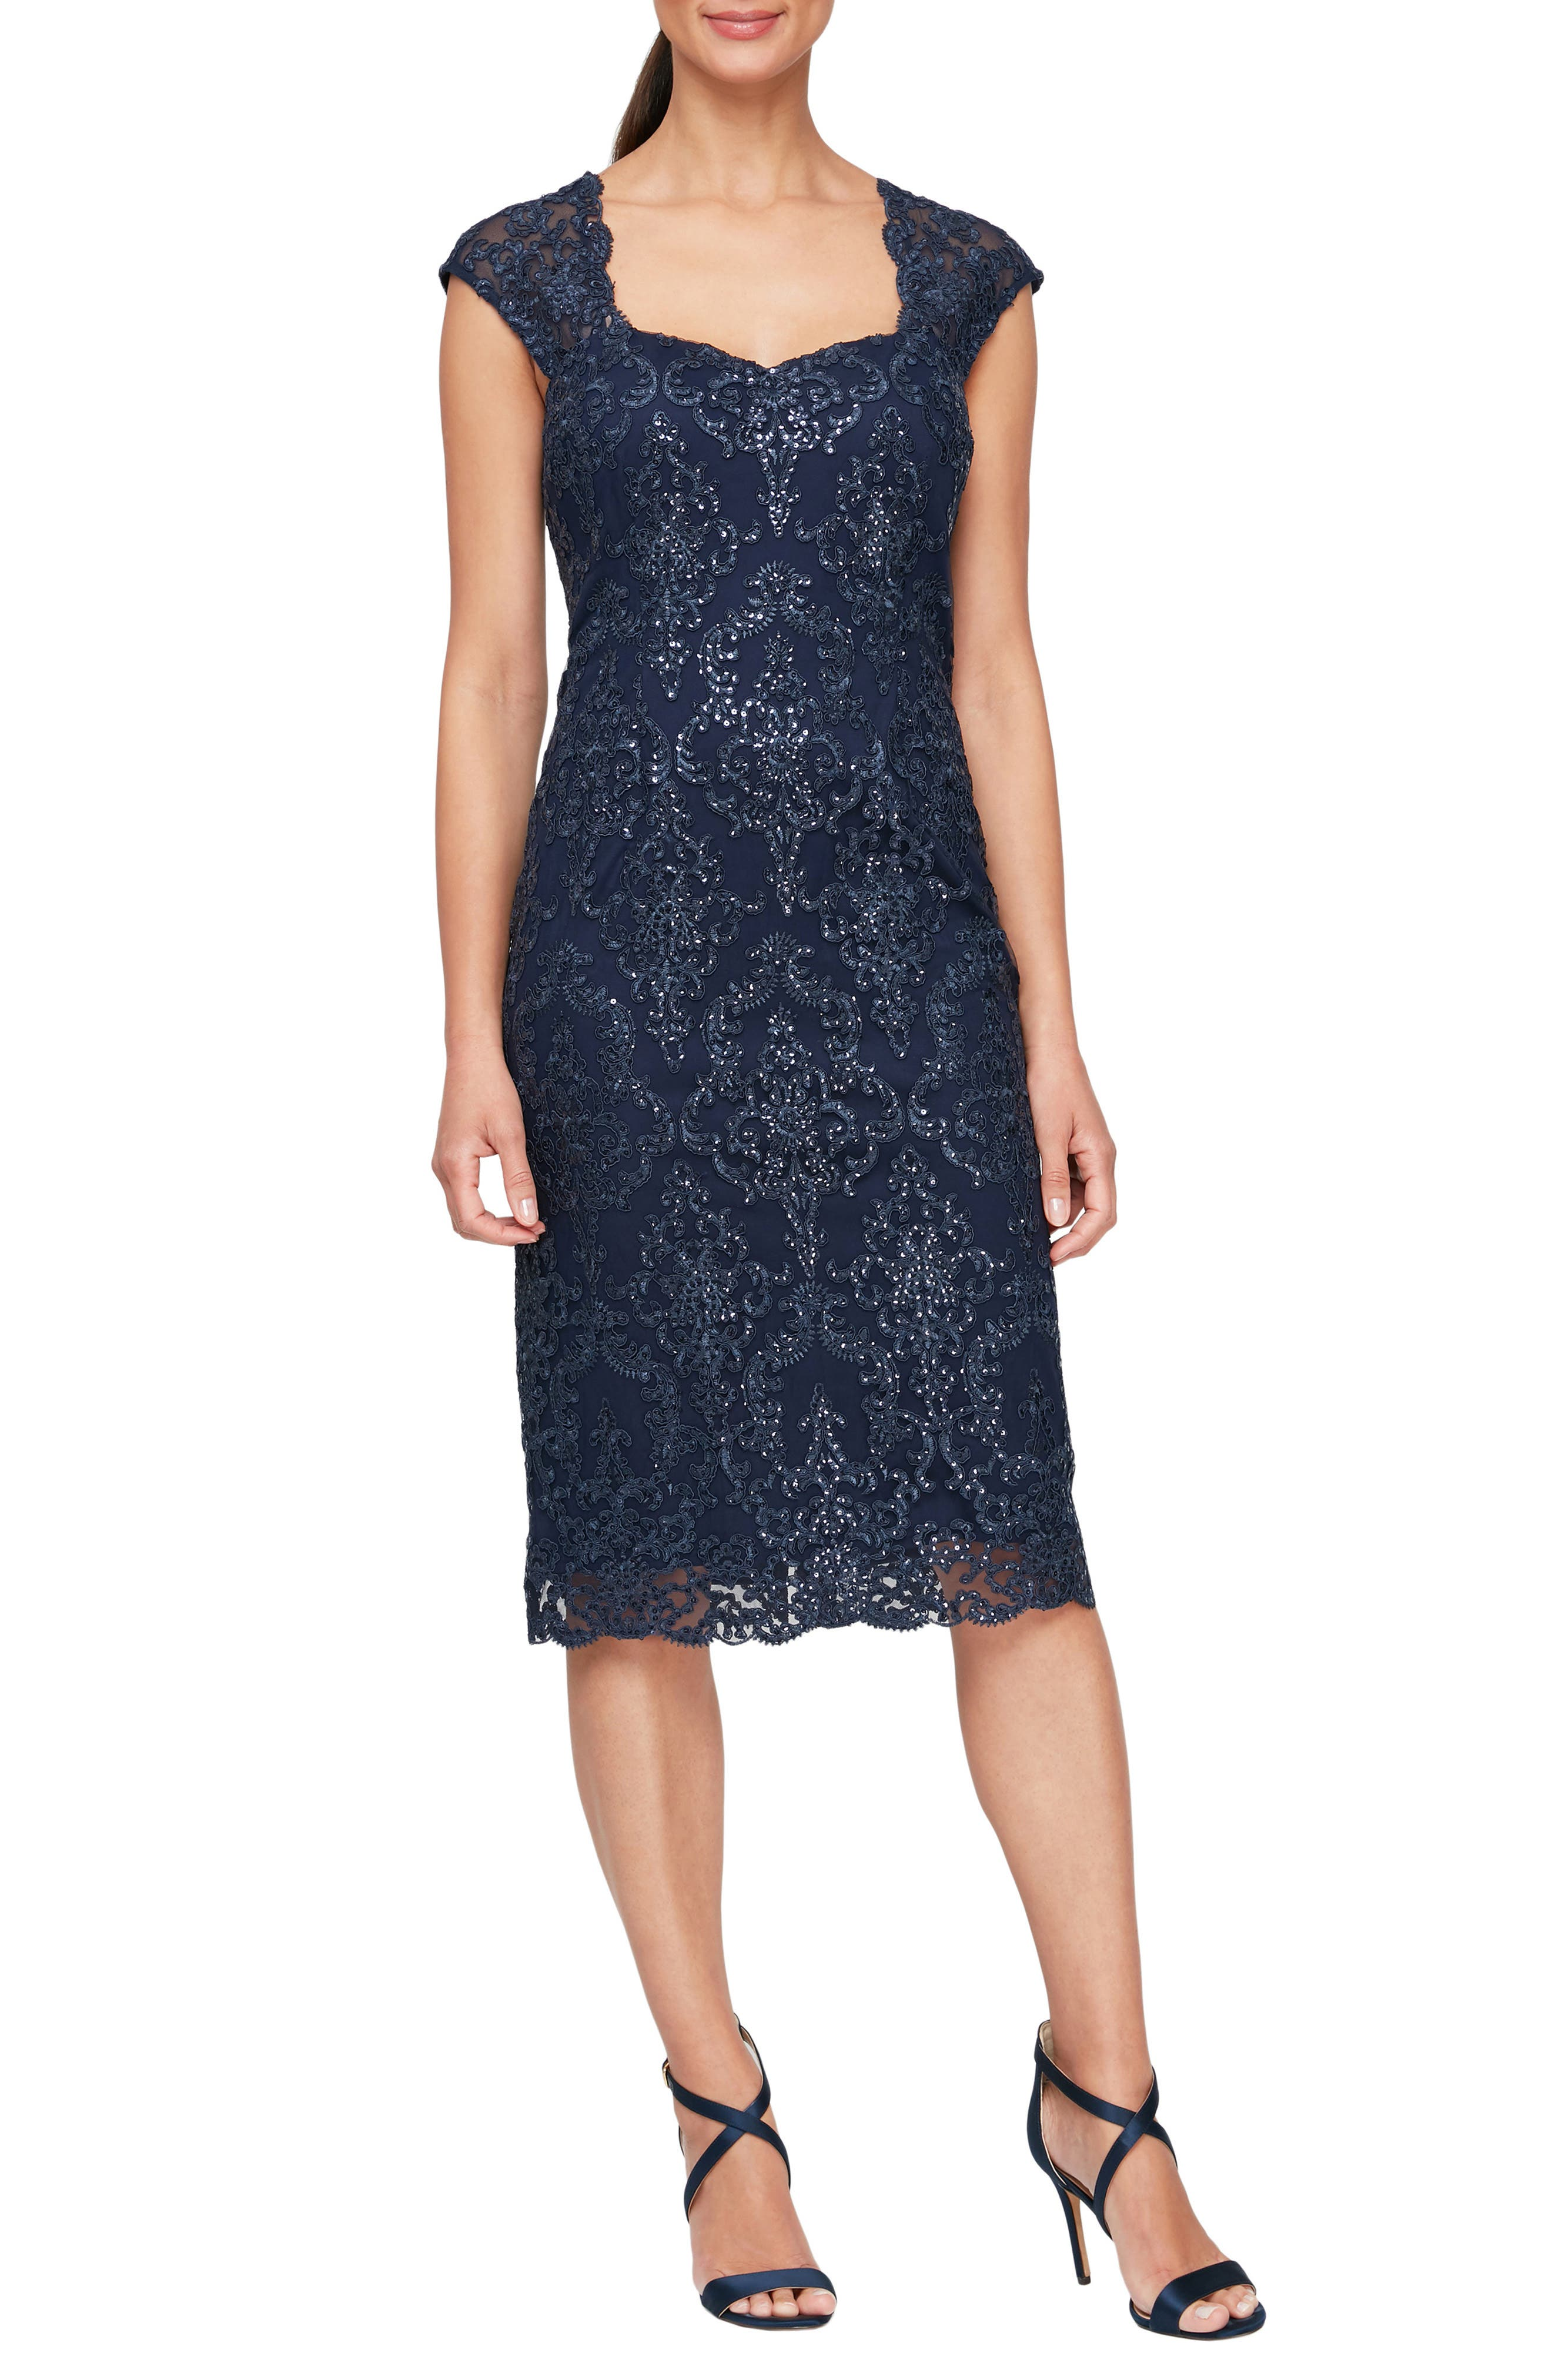 Sequin Embroidery Cocktail Sheath Dress